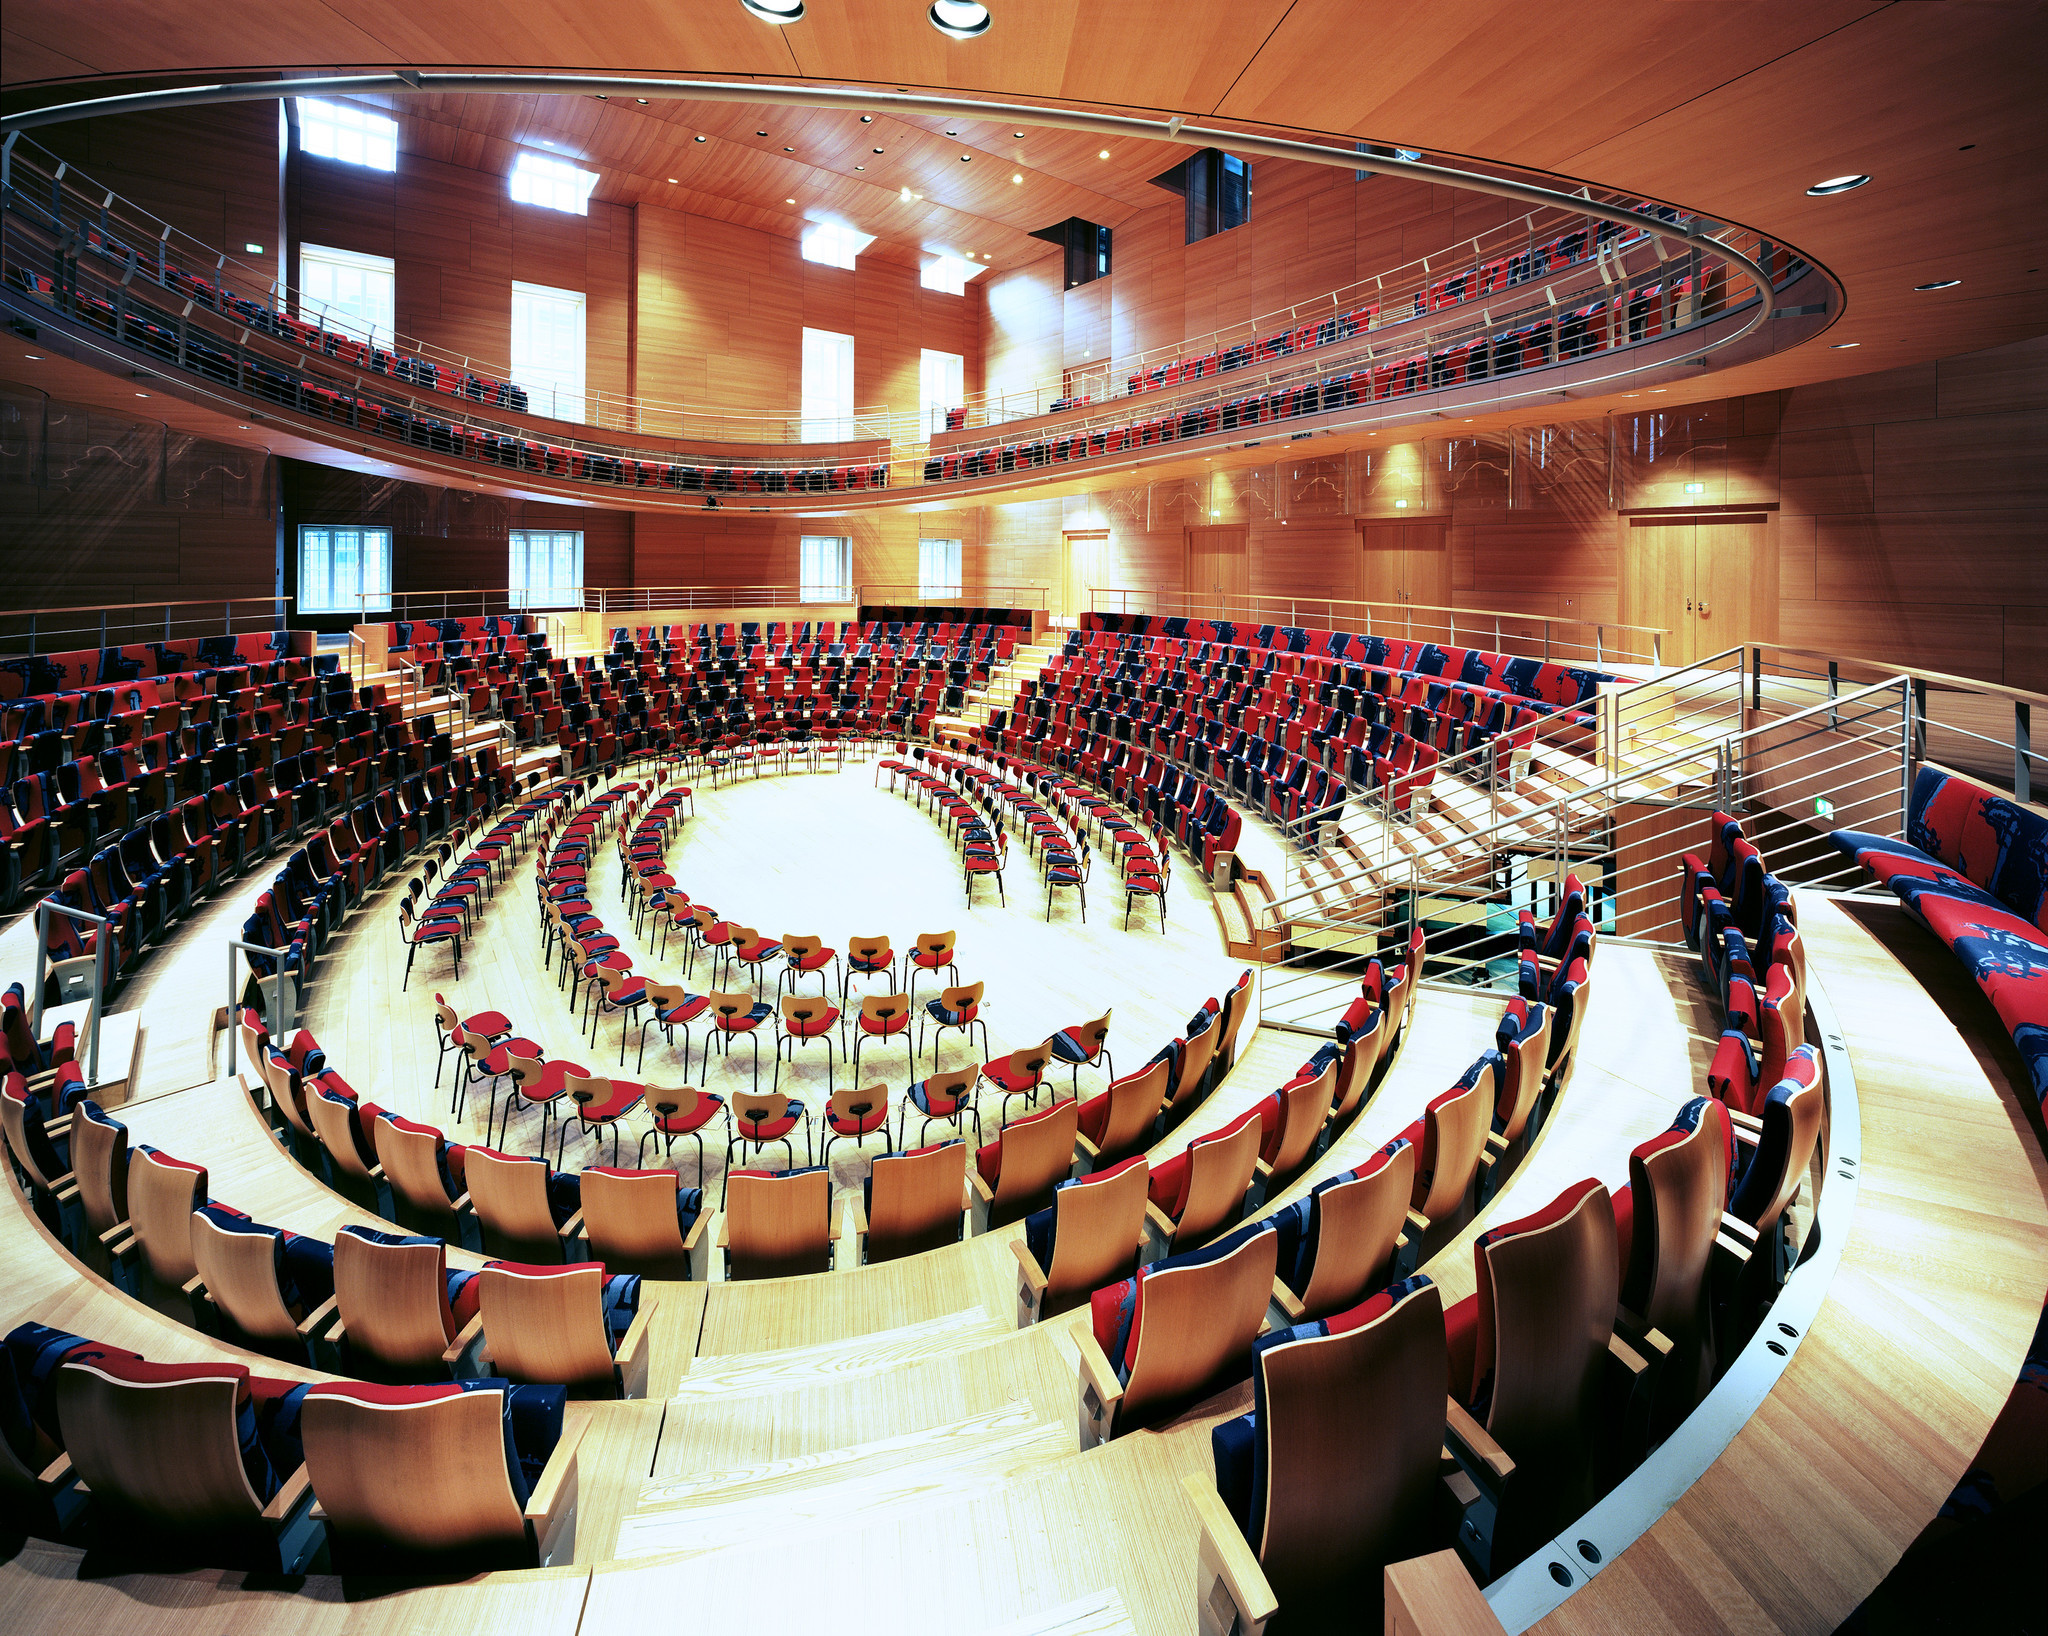 The hall is easily reconfigurable for concerts and rehearsals.